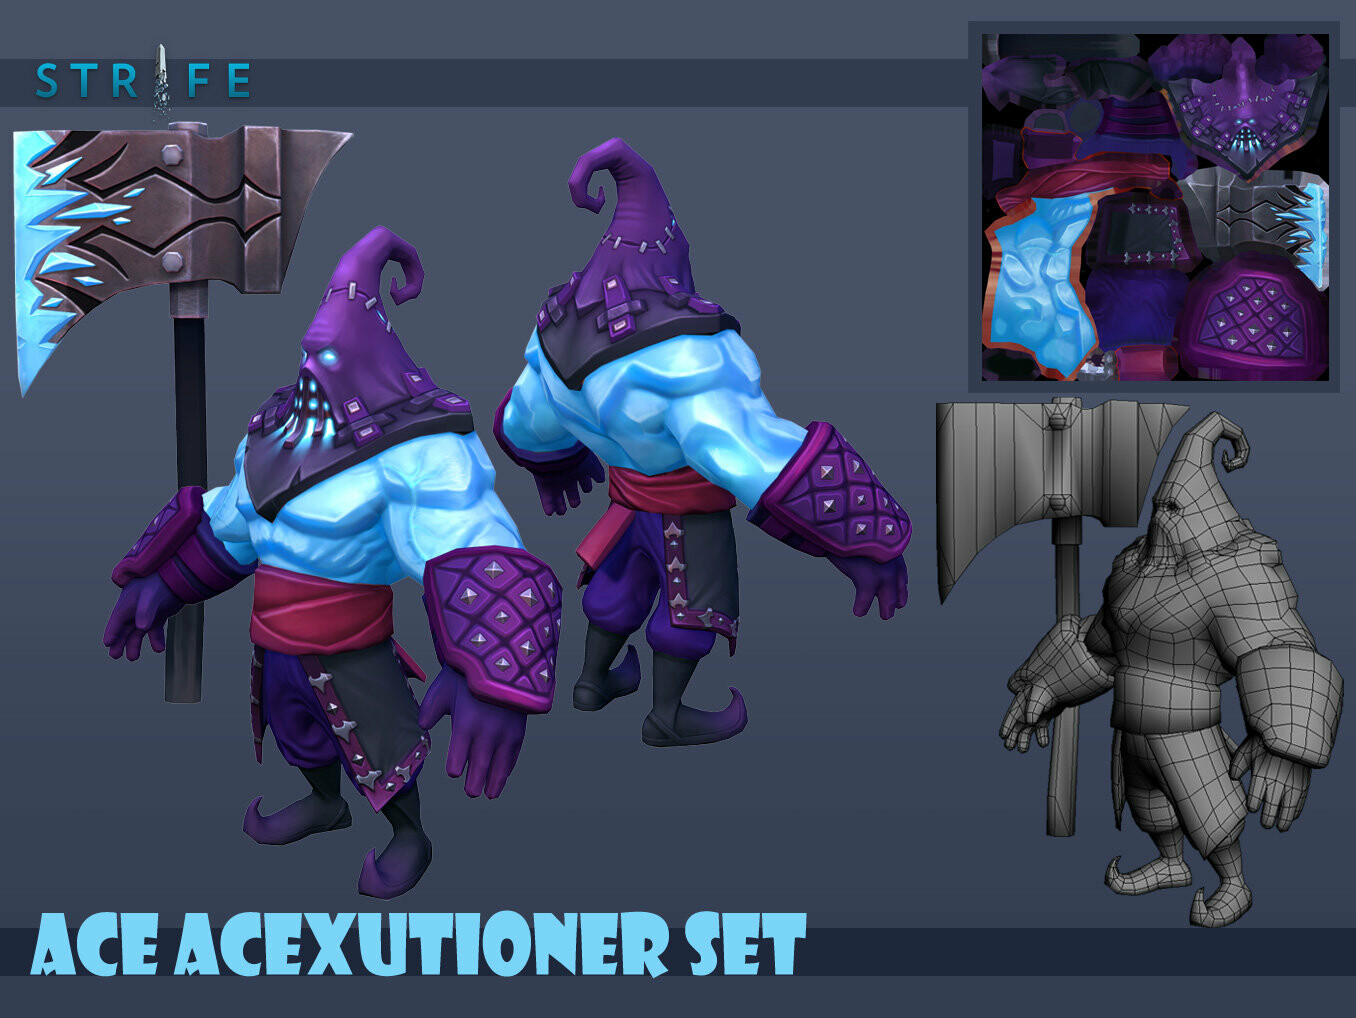 Ace AceXcutioner Set  4k Polygons  Diffuse, Normal, Specular